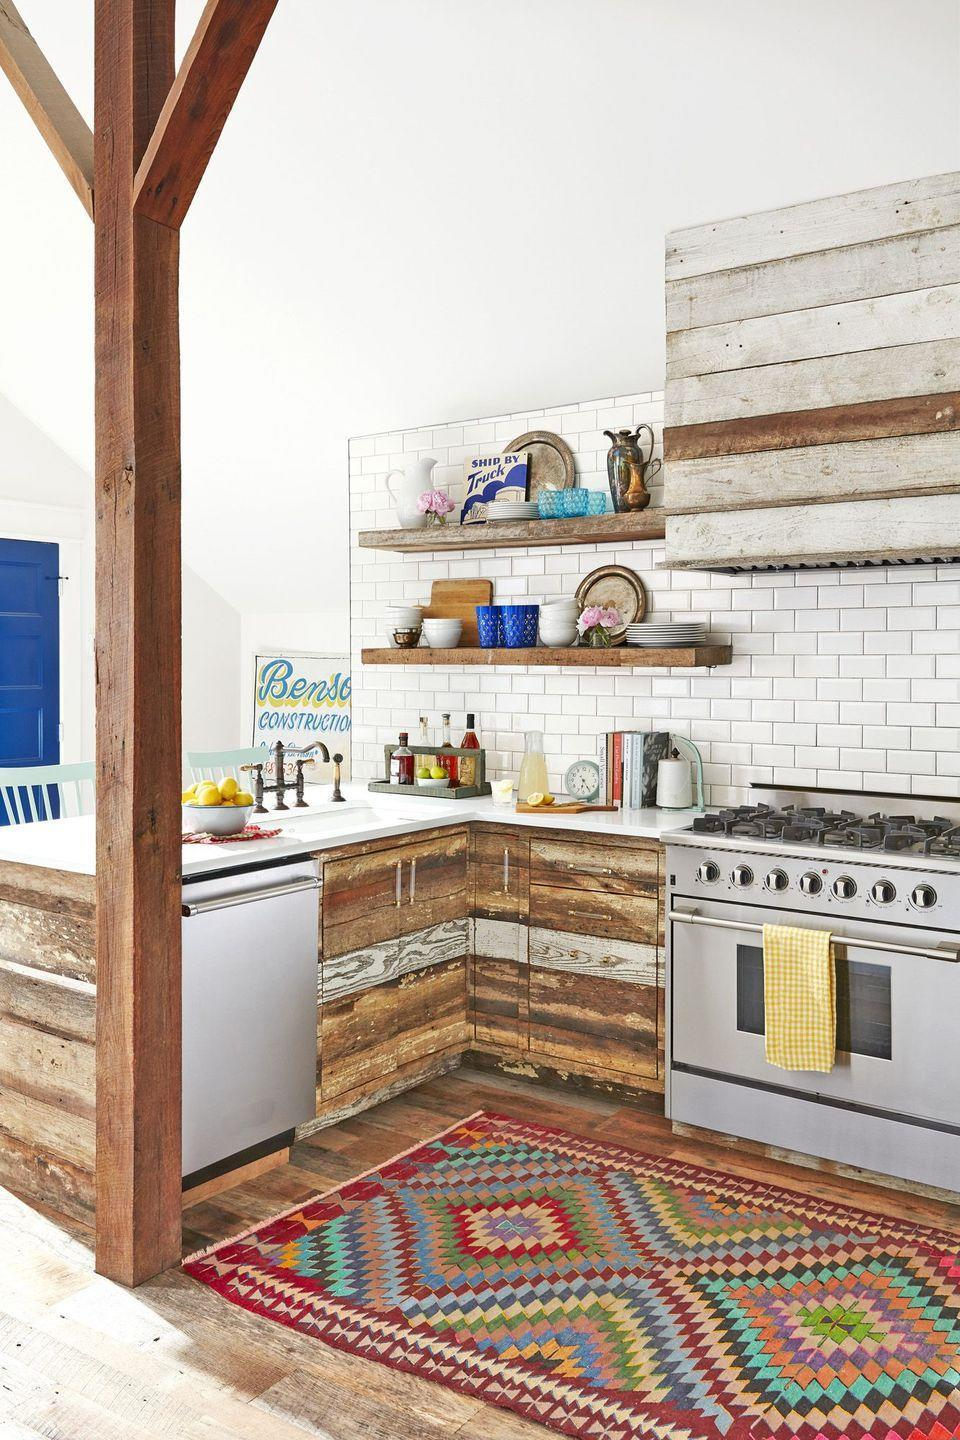 "<p>If you feel inclined to give more attention to your appliances, backsplash, or accessories, then you're going to be the first to embrace this new trend. Let your other kitchen elements steal the show with a sleek and minimalistic range hood like <a href=""https://www.countryliving.com/home-design/house-tours/g20955378/converted-barn-home-nashville-tennessee/"" rel=""nofollow noopener"" target=""_blank"" data-ylk=""slk:this one"" class=""link rapid-noclick-resp"">this one</a> fashioned to blend in with the former chicken coop cabinets.</p><p><a class=""link rapid-noclick-resp"" href=""https://www.amazon.com/Kitchen-Rugs/b?ie=UTF8&node=644050011&tag=syn-yahoo-20&ascsubtag=%5Bartid%7C10050.g.3988%5Bsrc%7Cyahoo-us"" rel=""nofollow noopener"" target=""_blank"" data-ylk=""slk:SHOP KITCHEN RUGS"">SHOP KITCHEN RUGS</a></p>"